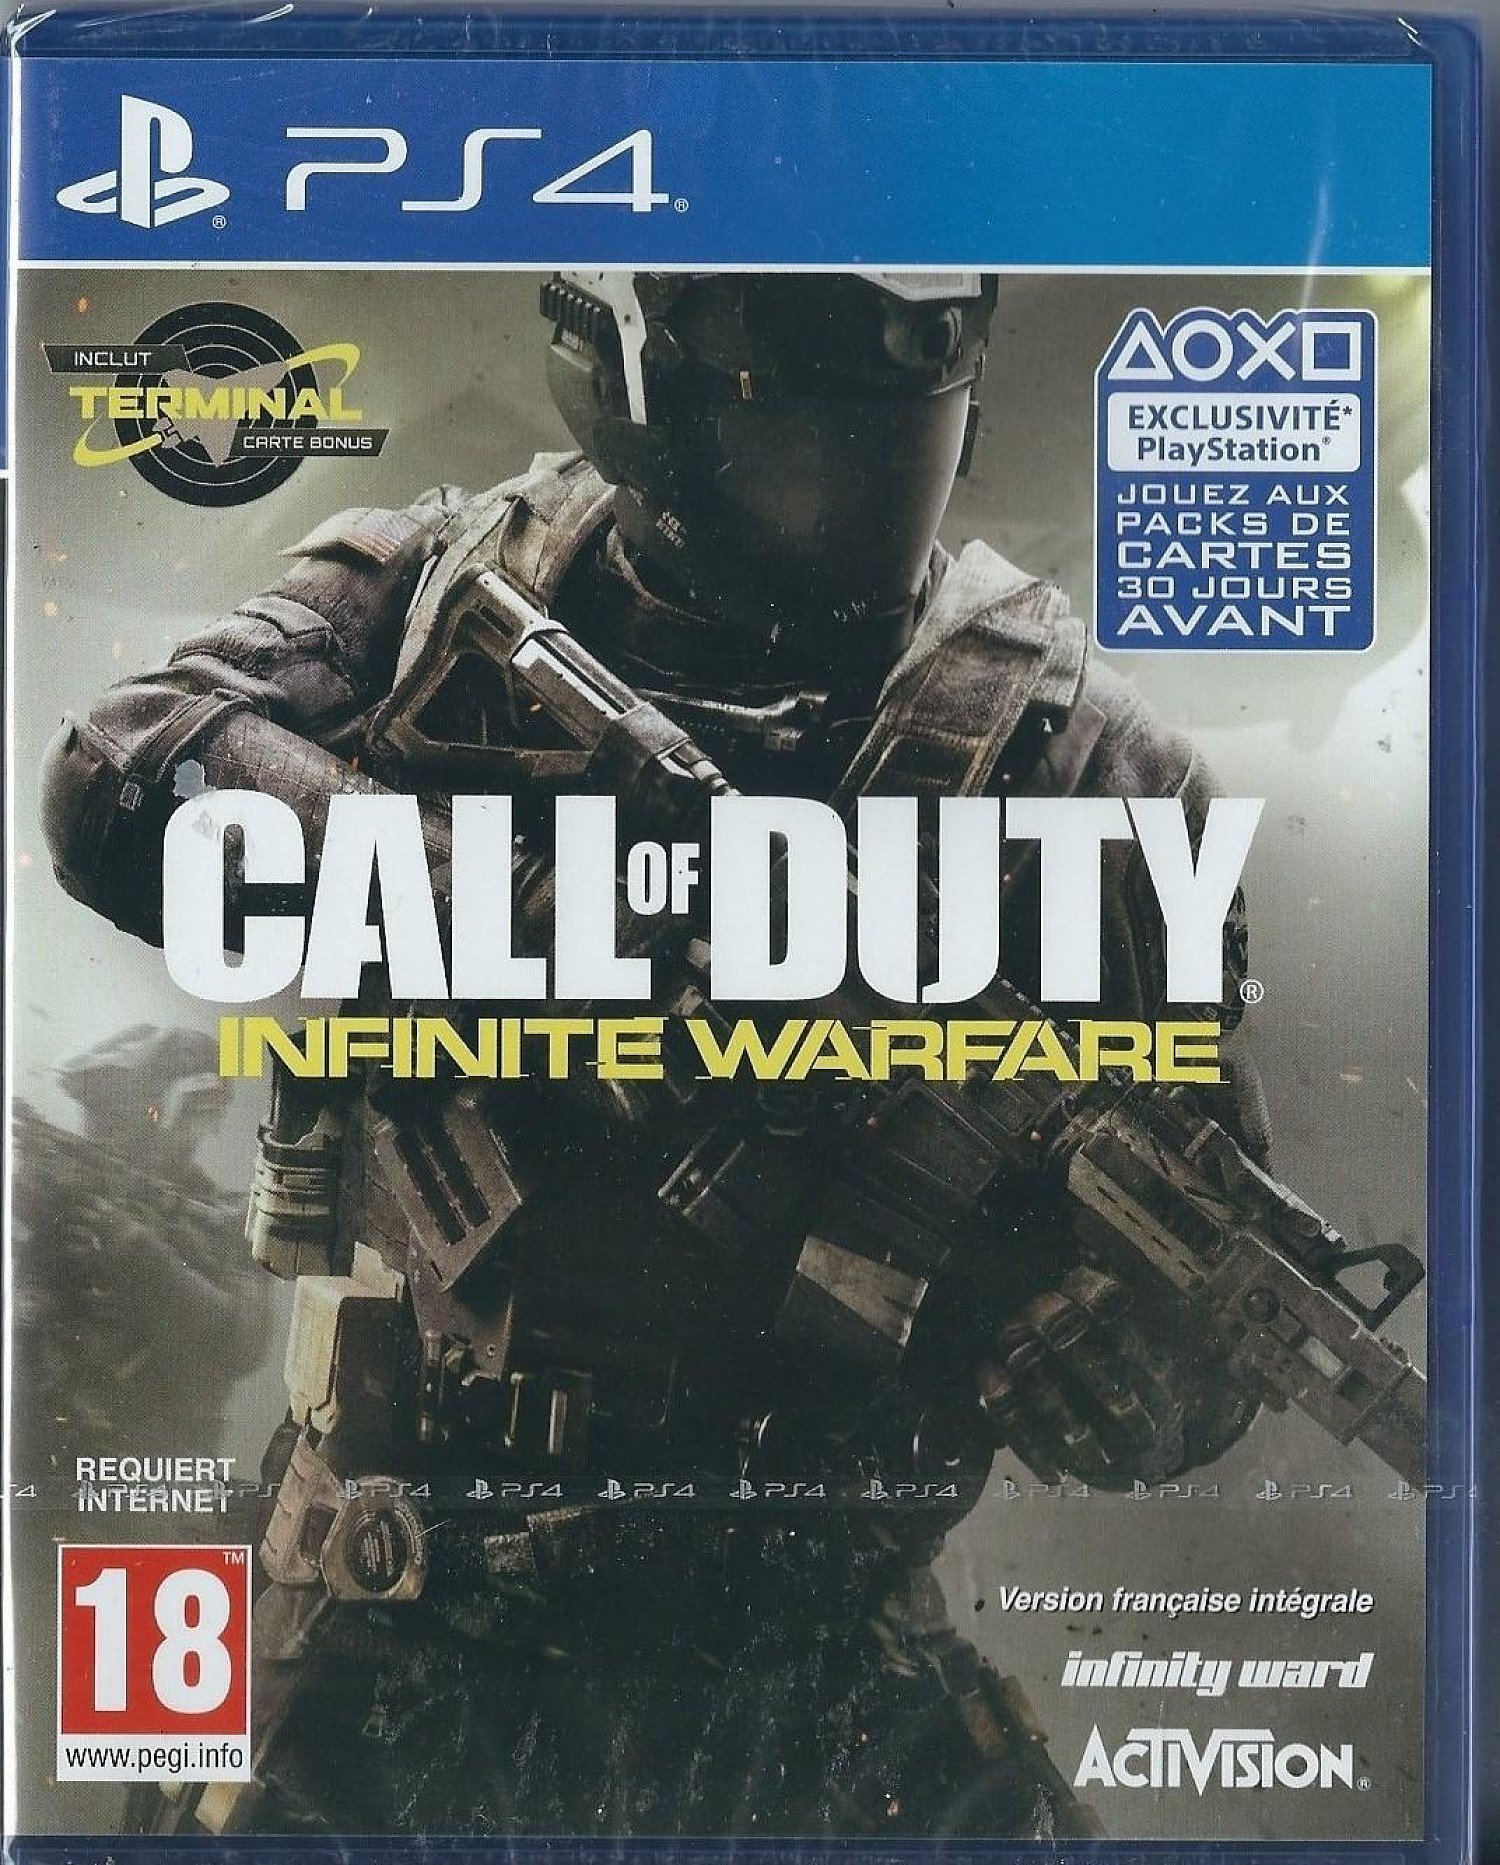 Playstation 4 Call of Duty: Infinite Warfare (PS4) BRAND NEW (IMPORT)